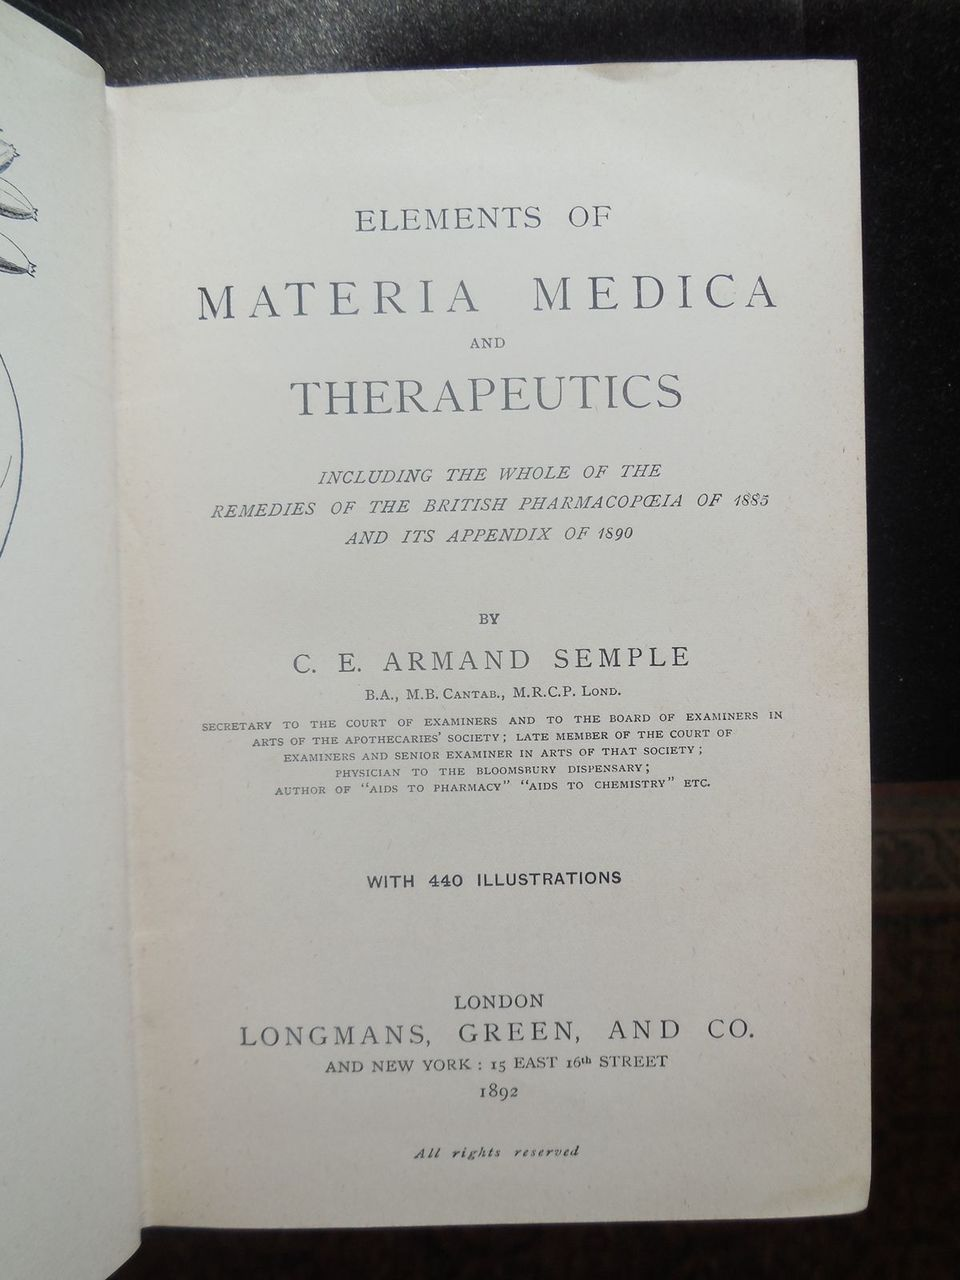 ELEMENTS OF MATERIA MEDICA/THERAPEUTICS, by Armand Semple - 1892